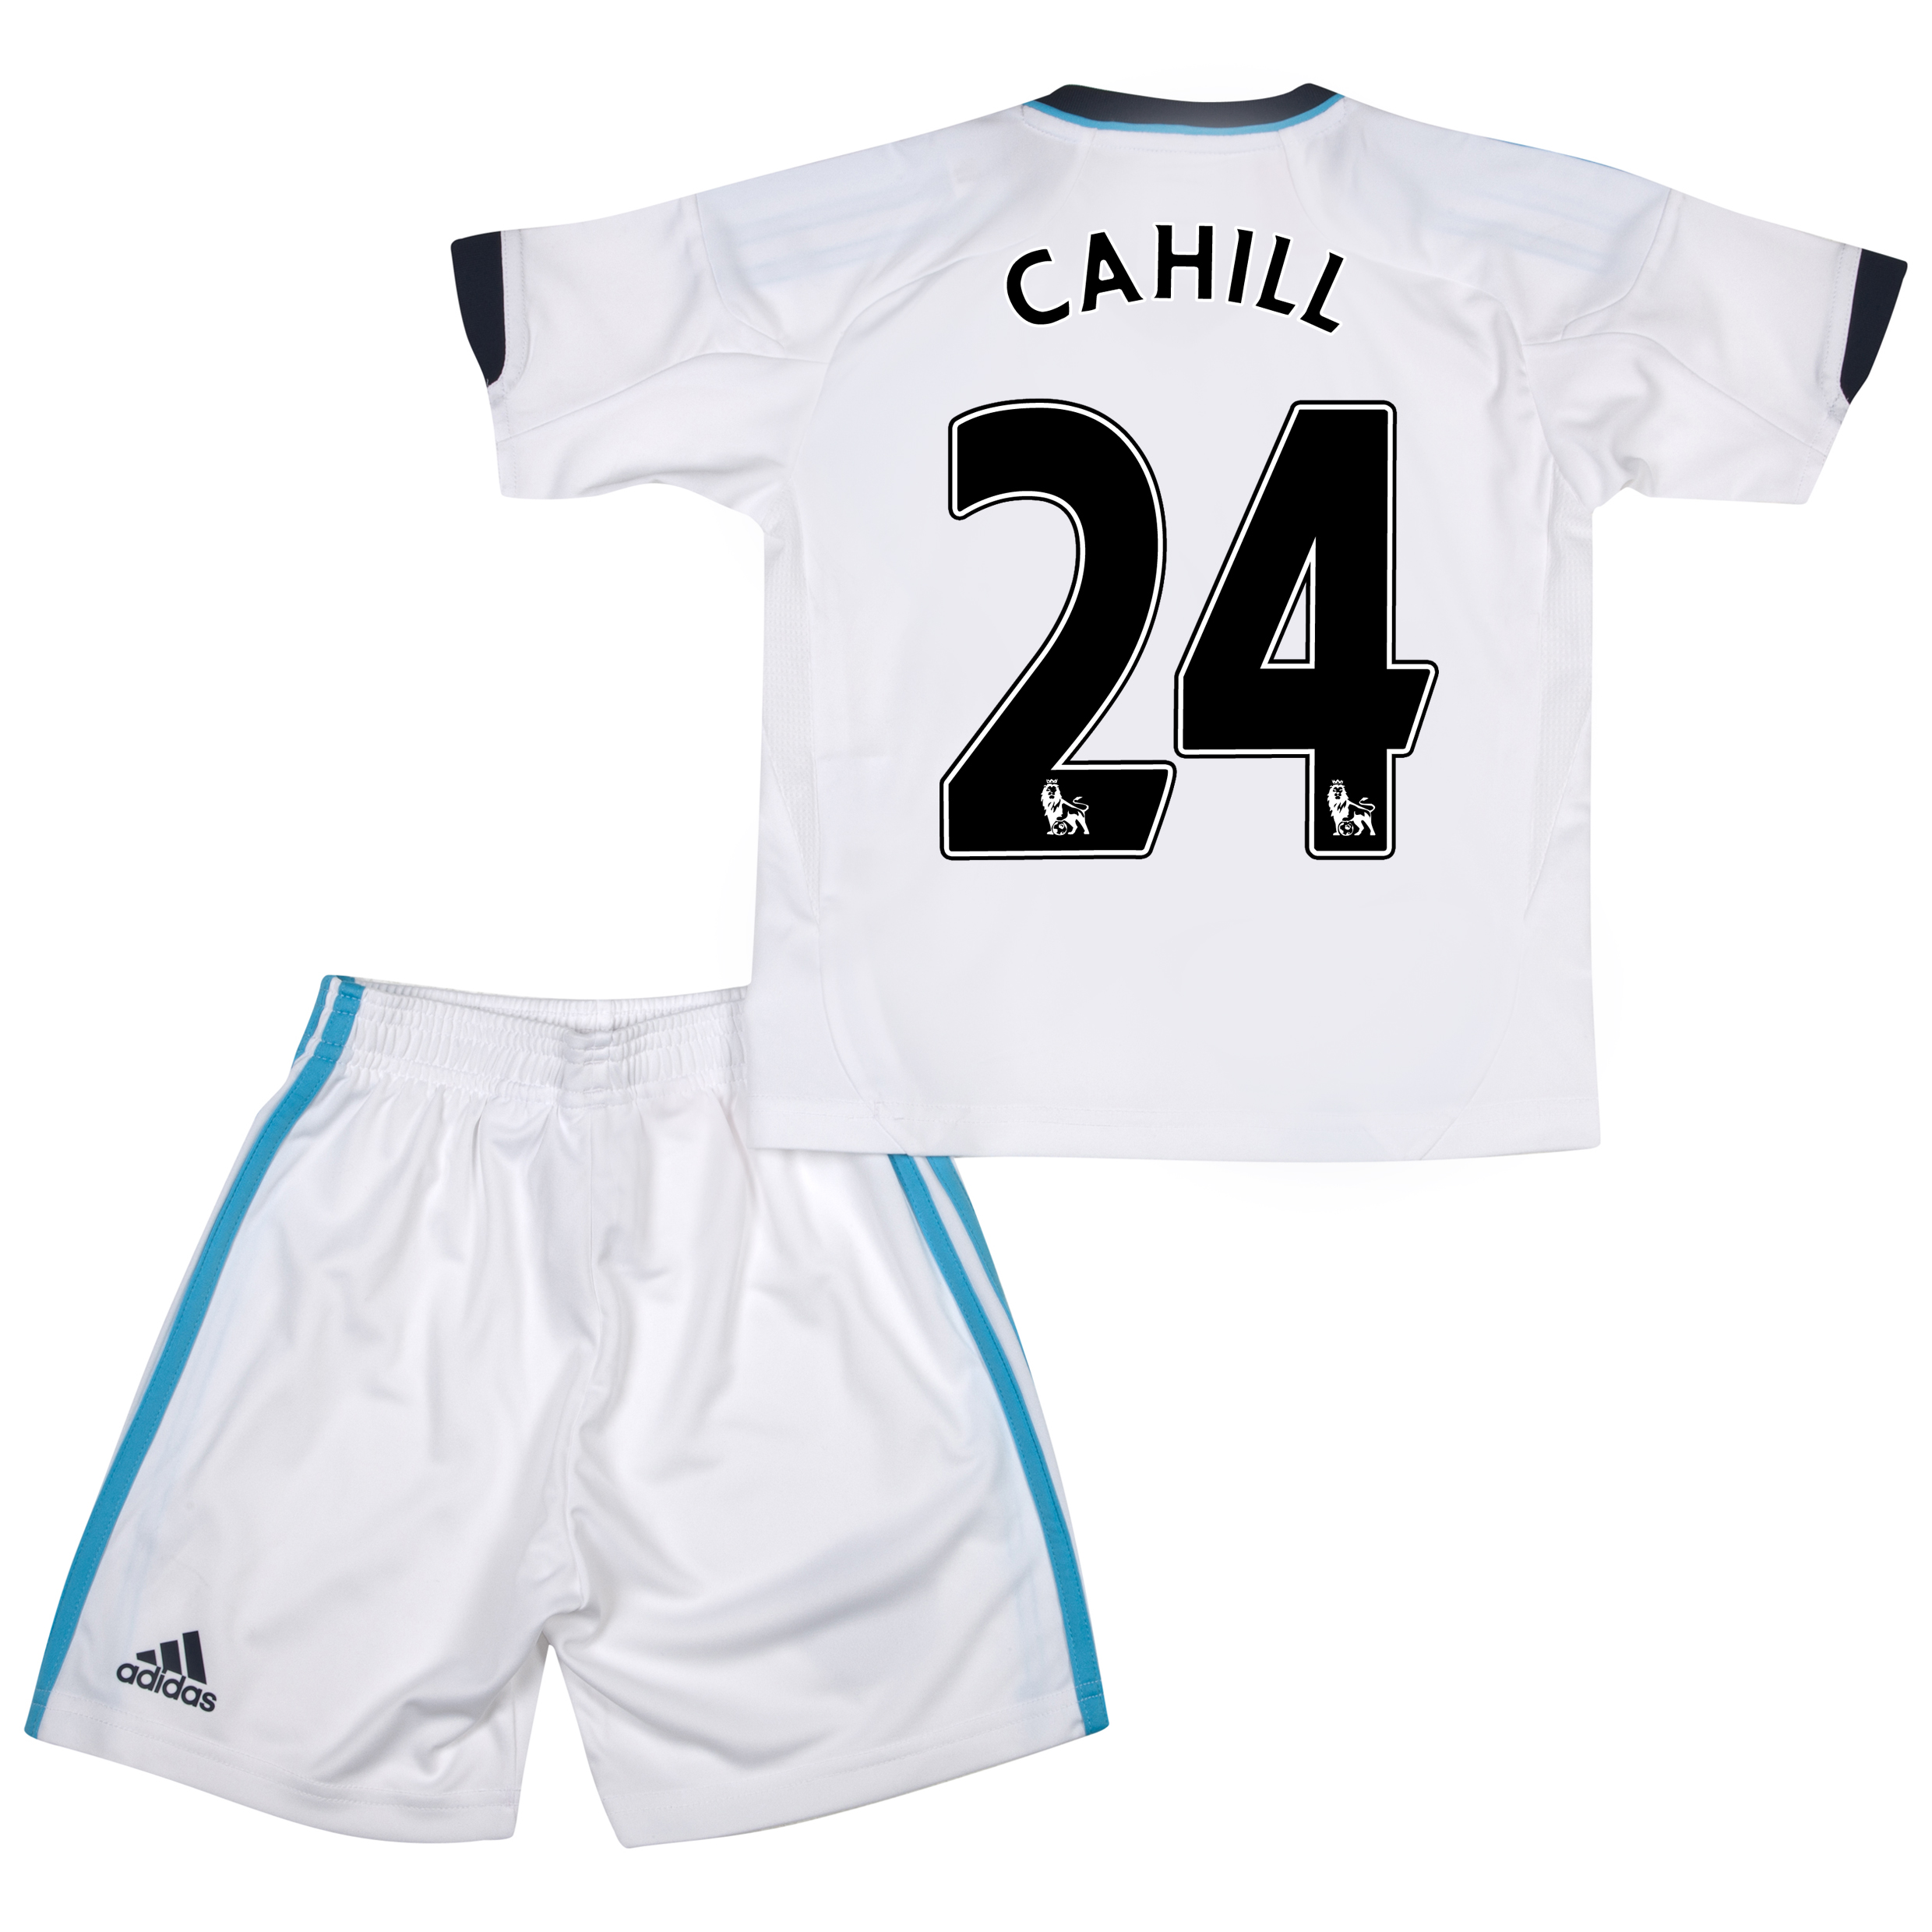 Chelsea Away Mini Kit 2012/13 with Cahill 24 printing